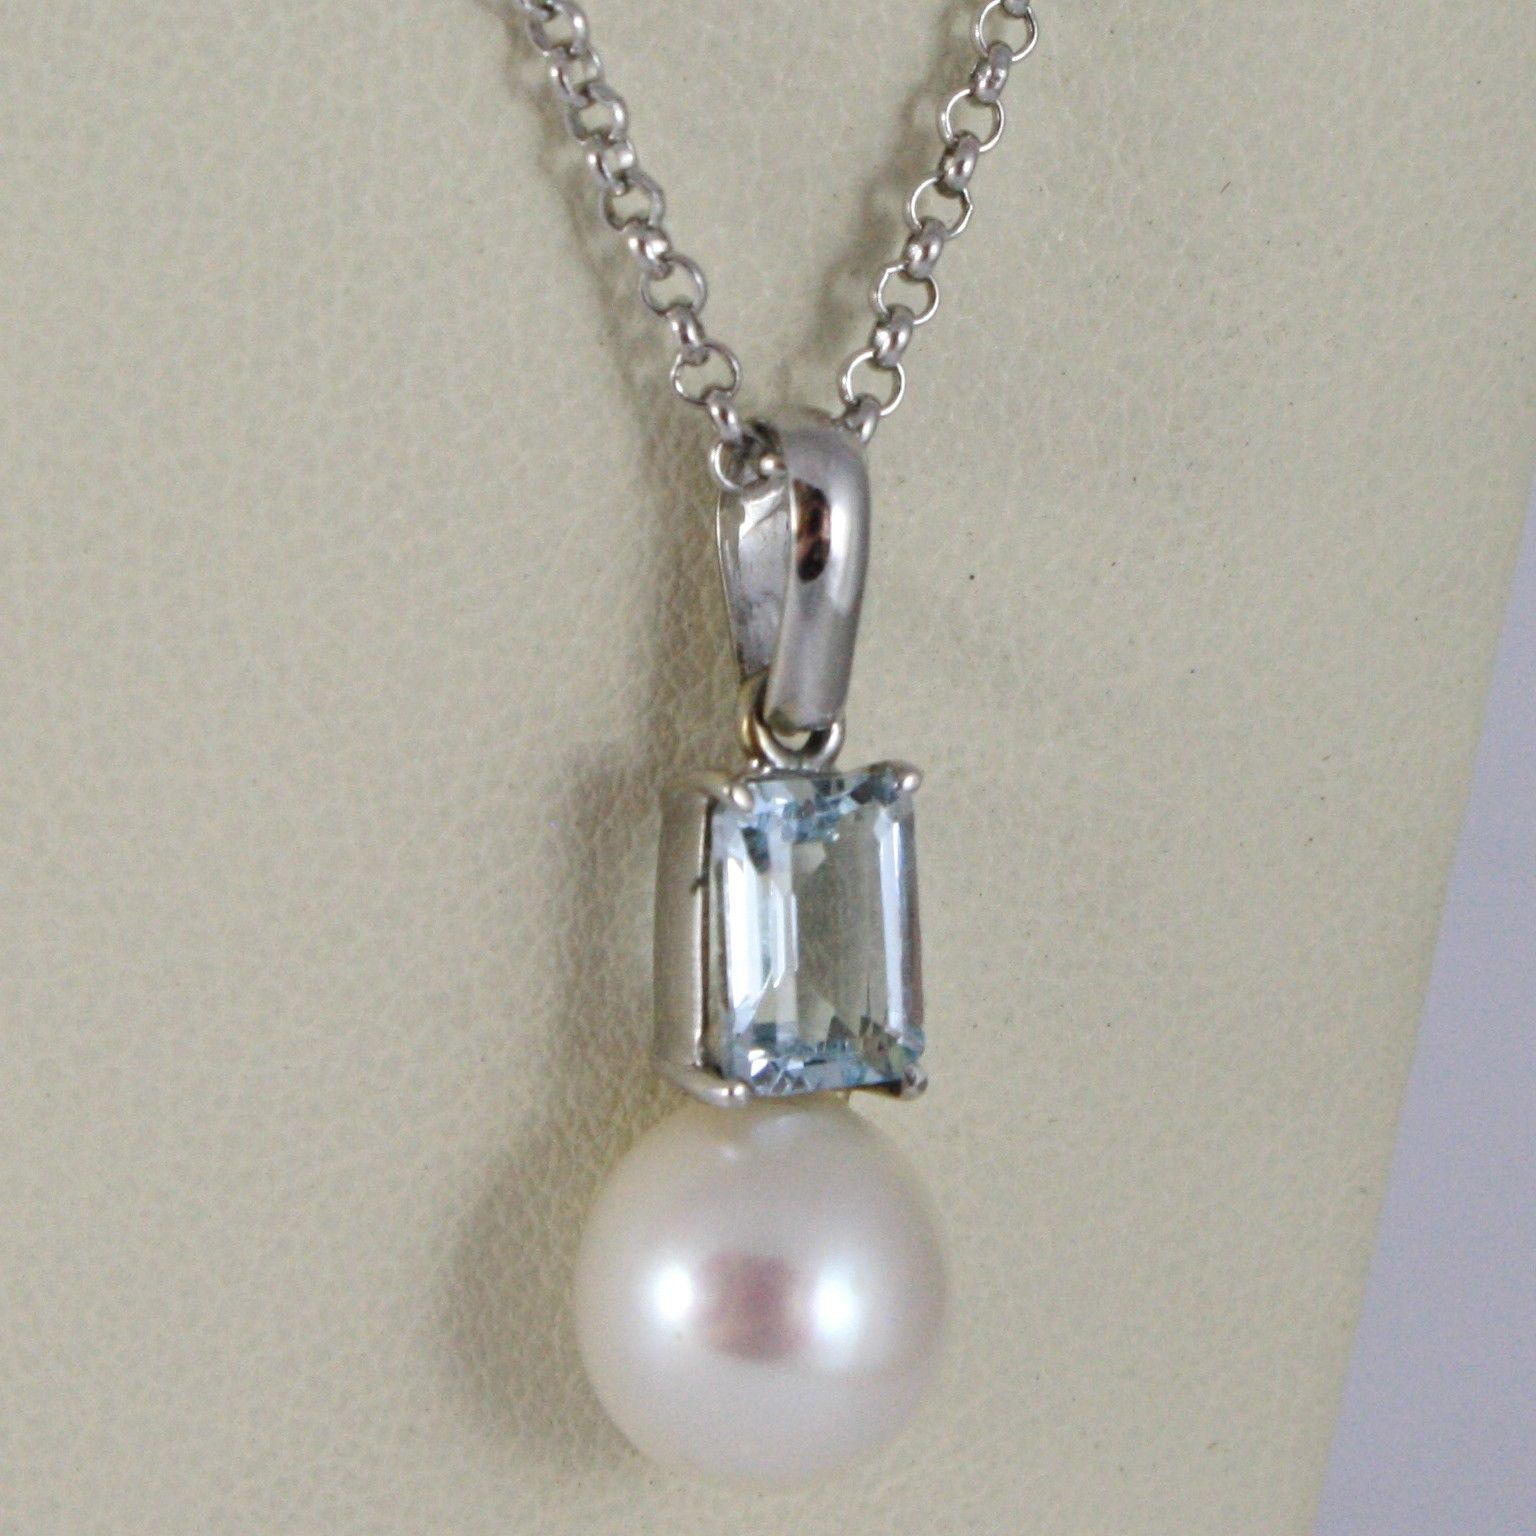 NECKLACE WHITE GOLD 750 - 18K AQUAMARINE CUT EMERALD, PEARL AND CHAIN ROLO'